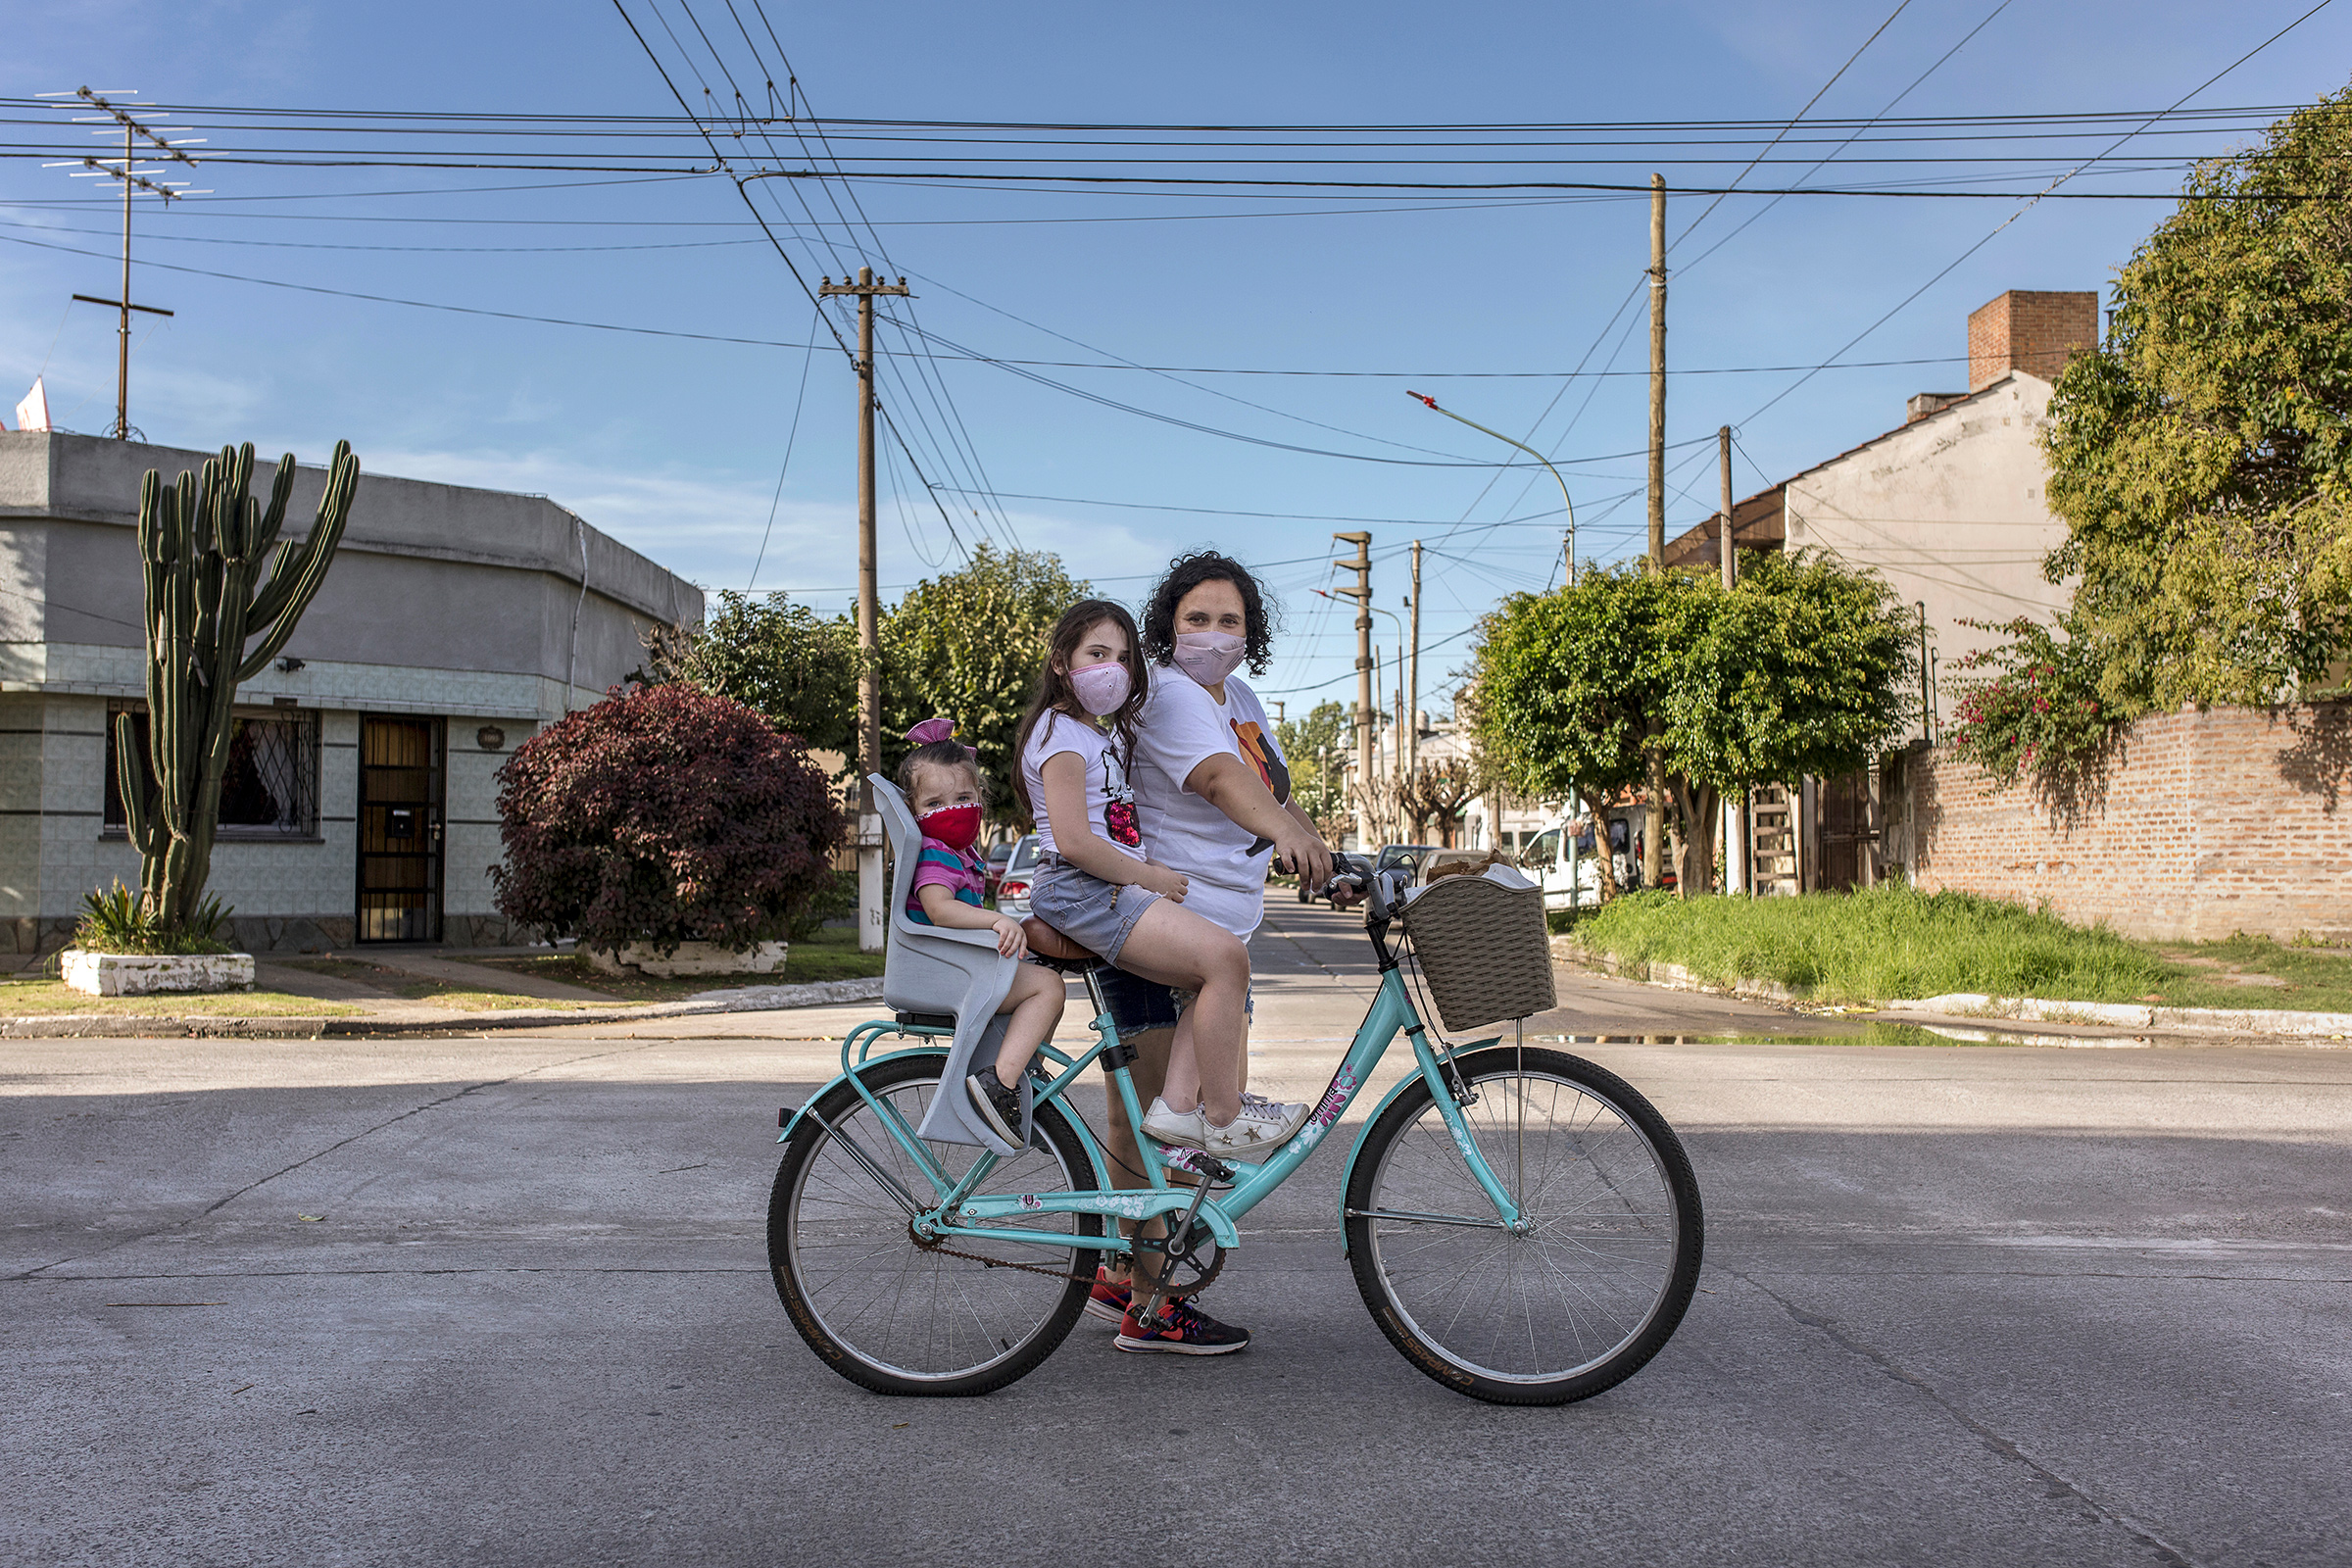 María Teresa Arzamendia stands for a portrait with her two daughters Leia and Catalina and her bicycle with pastries in El Palomar, Buenos Aires Province, on April 17.